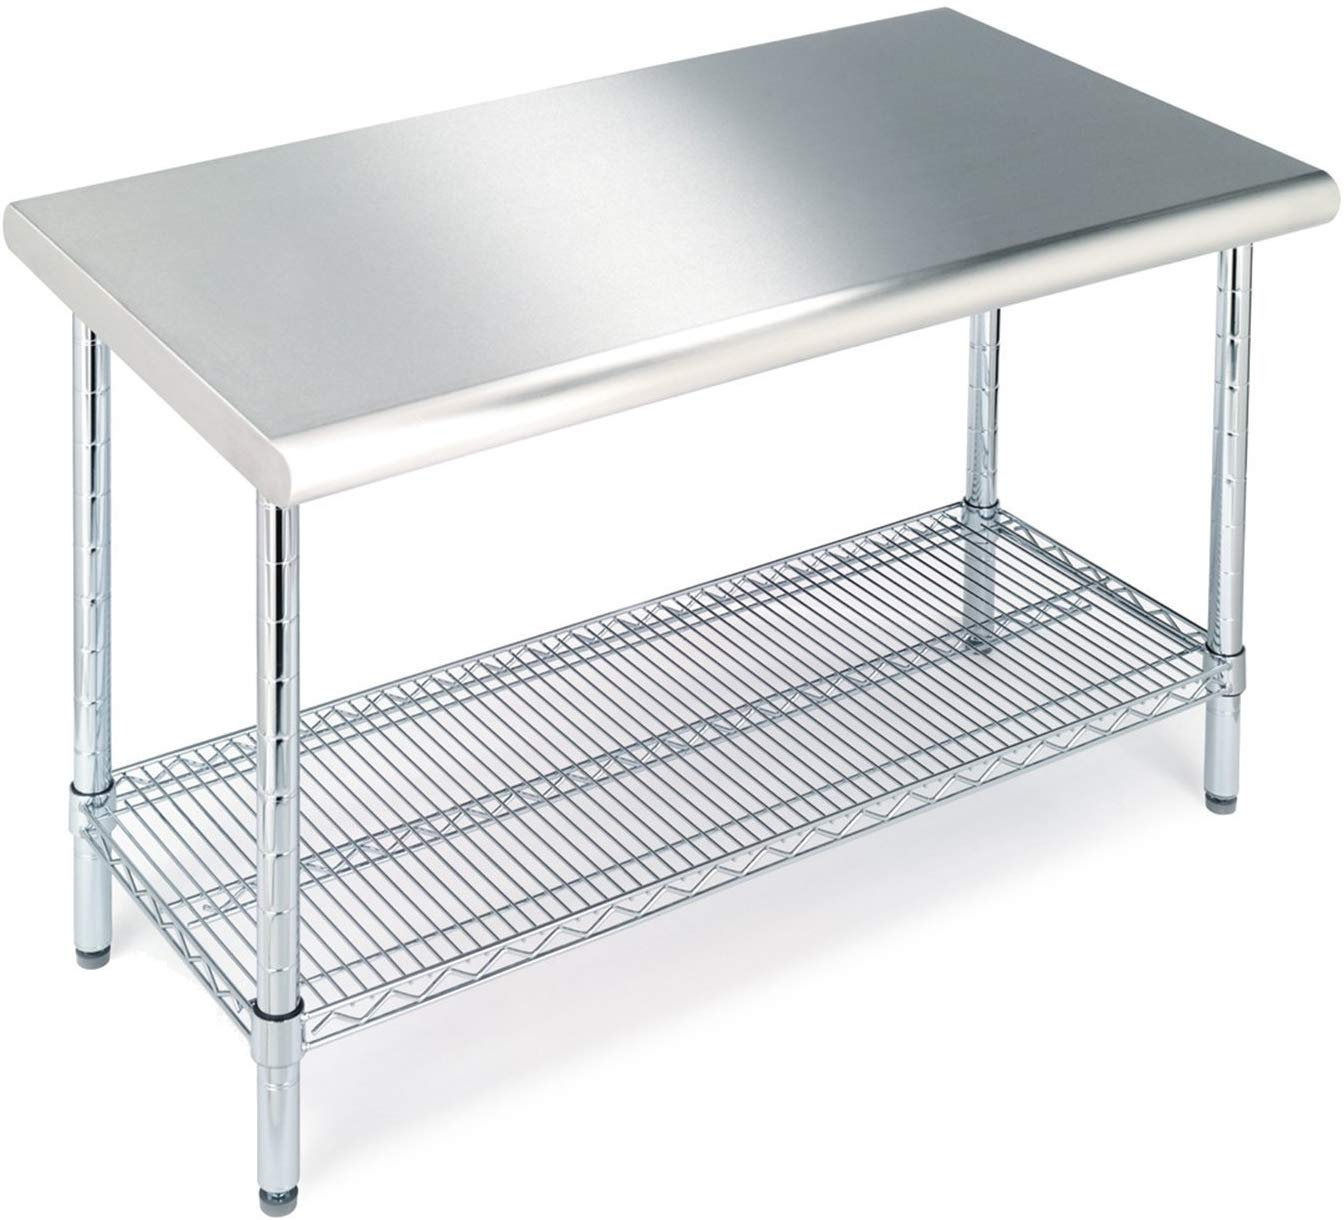 Multipurpose Utility Stainless Steel Table Comfy Niche